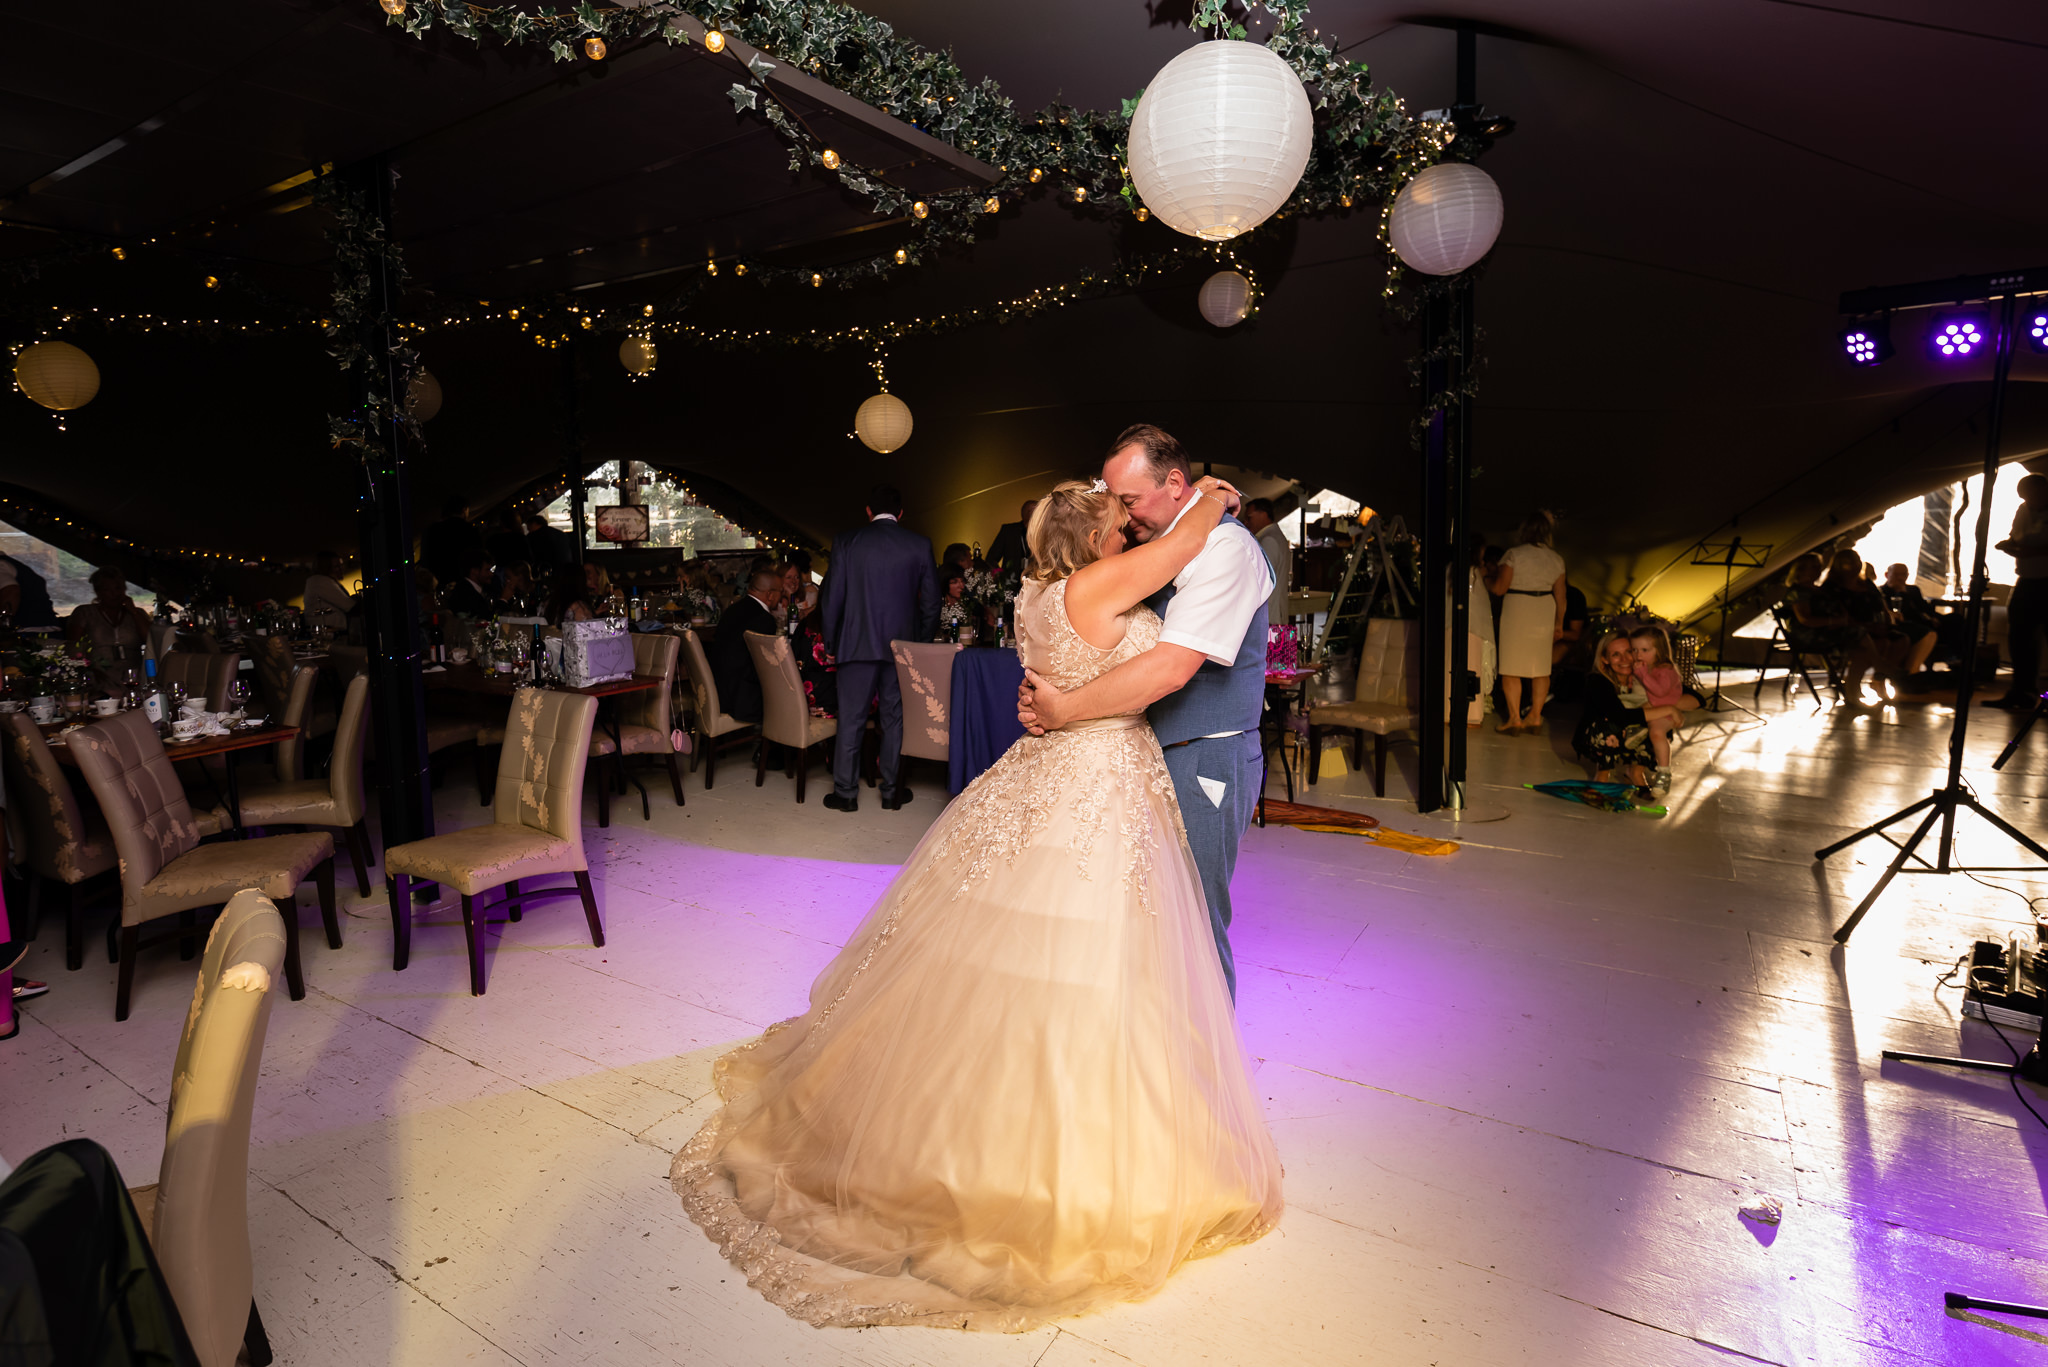 The bride and grooms first dance at The Oak Grove